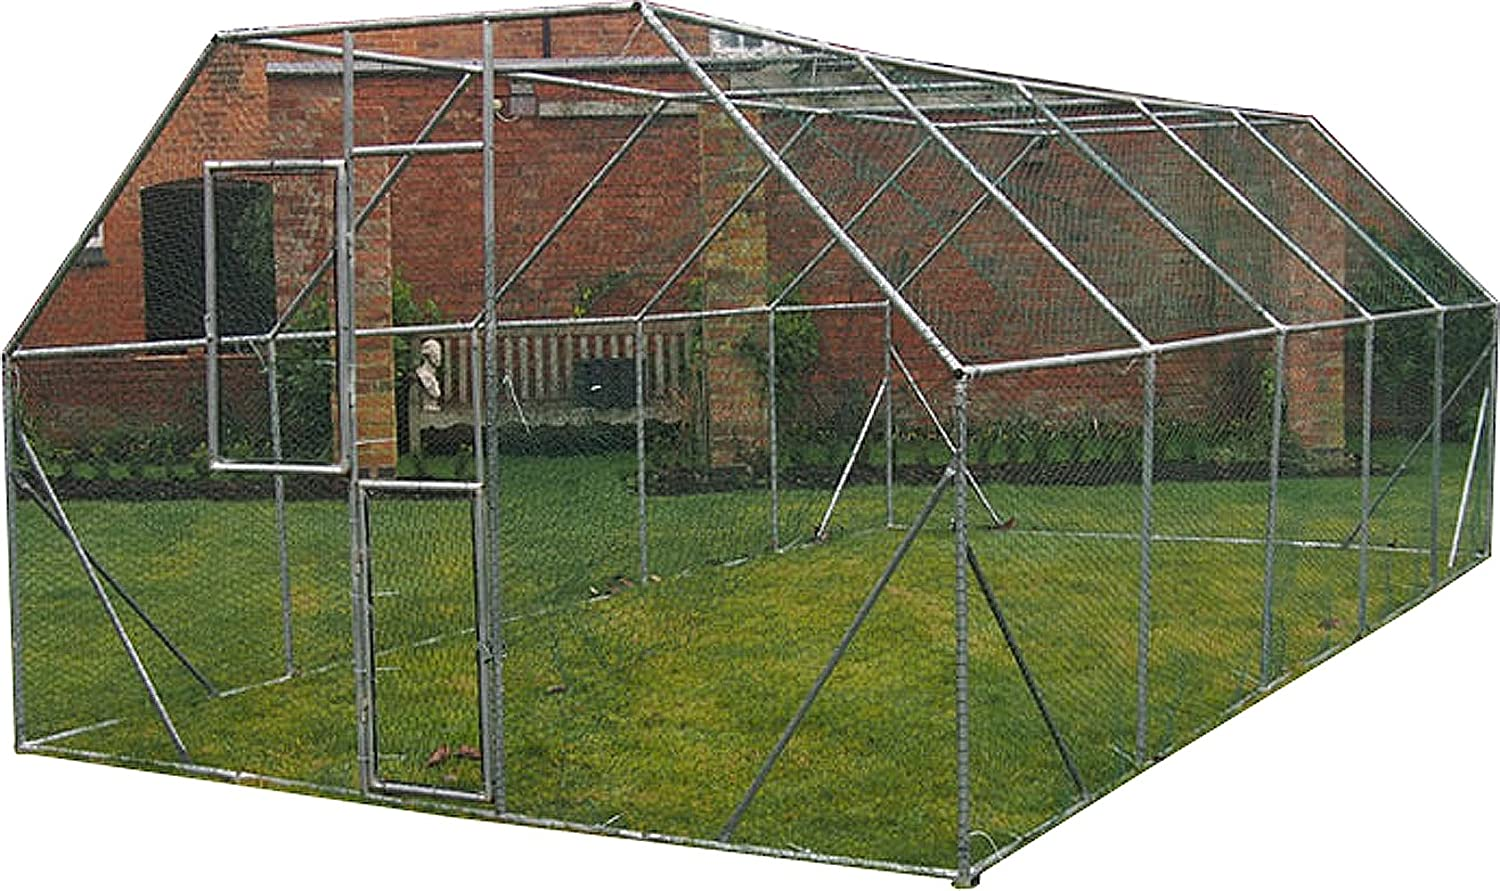 FeelGoodUK Galvanised Cage, 6 x 3 x 2 m